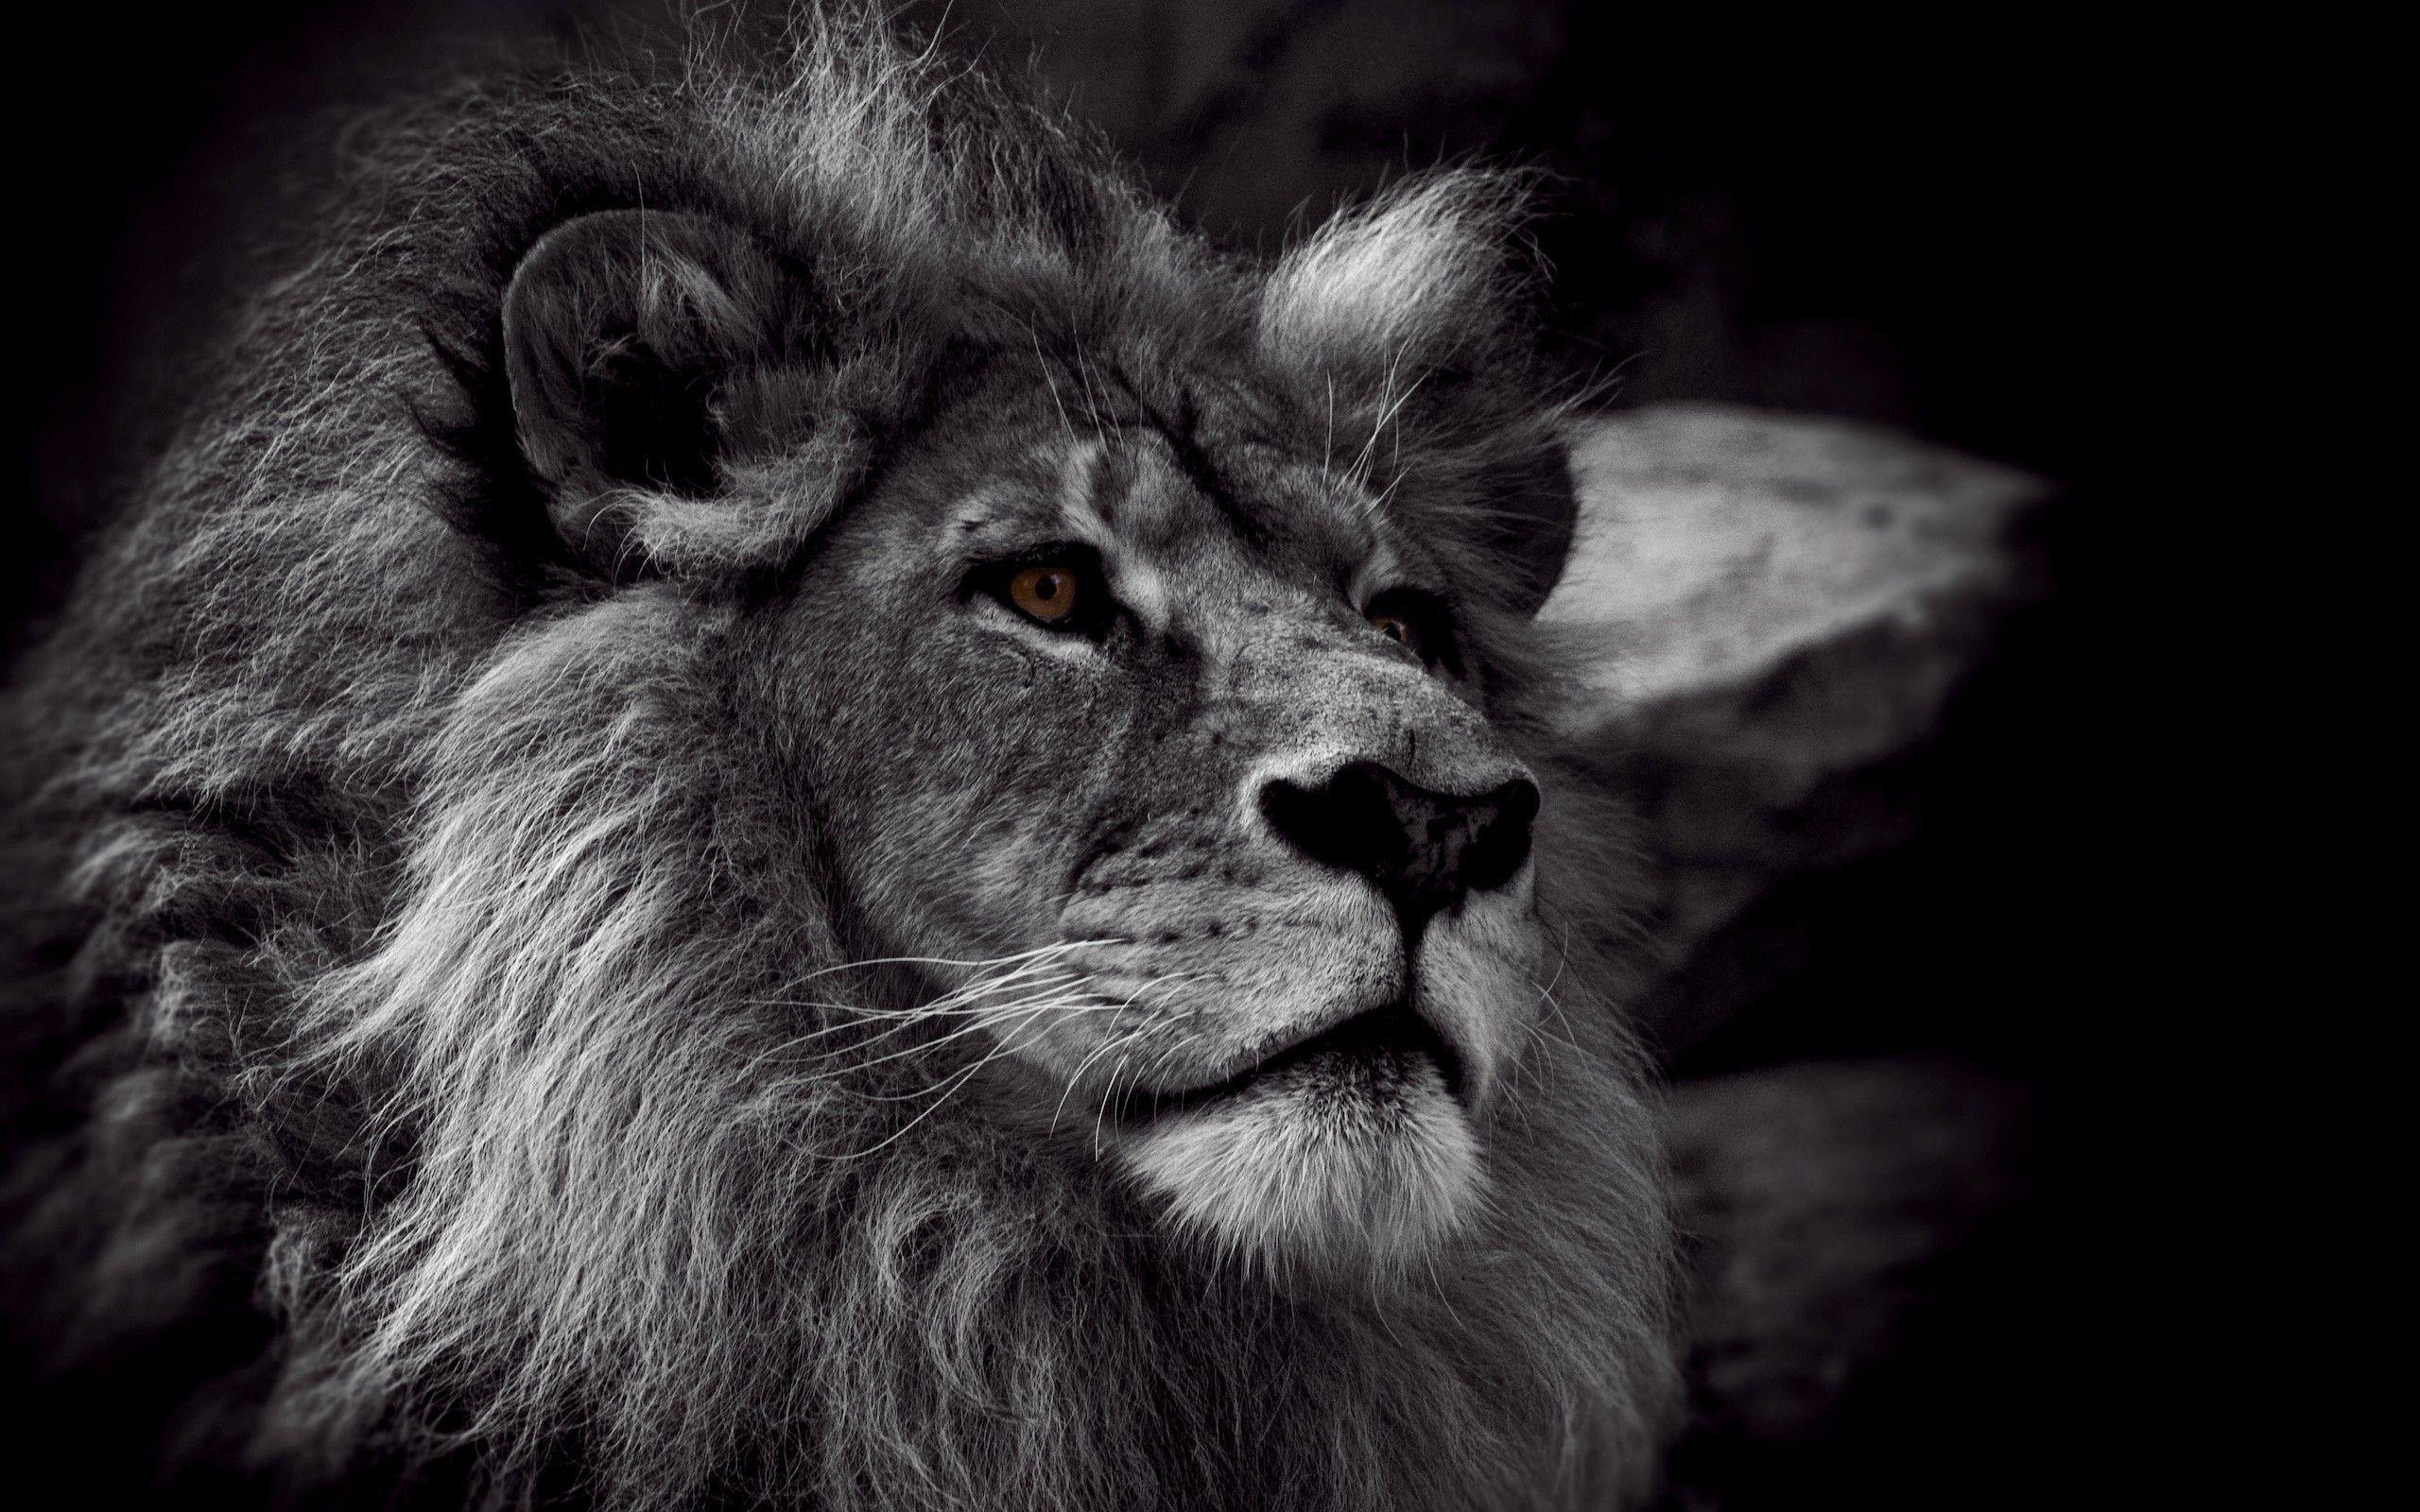 Angry Roaring Lion Hd